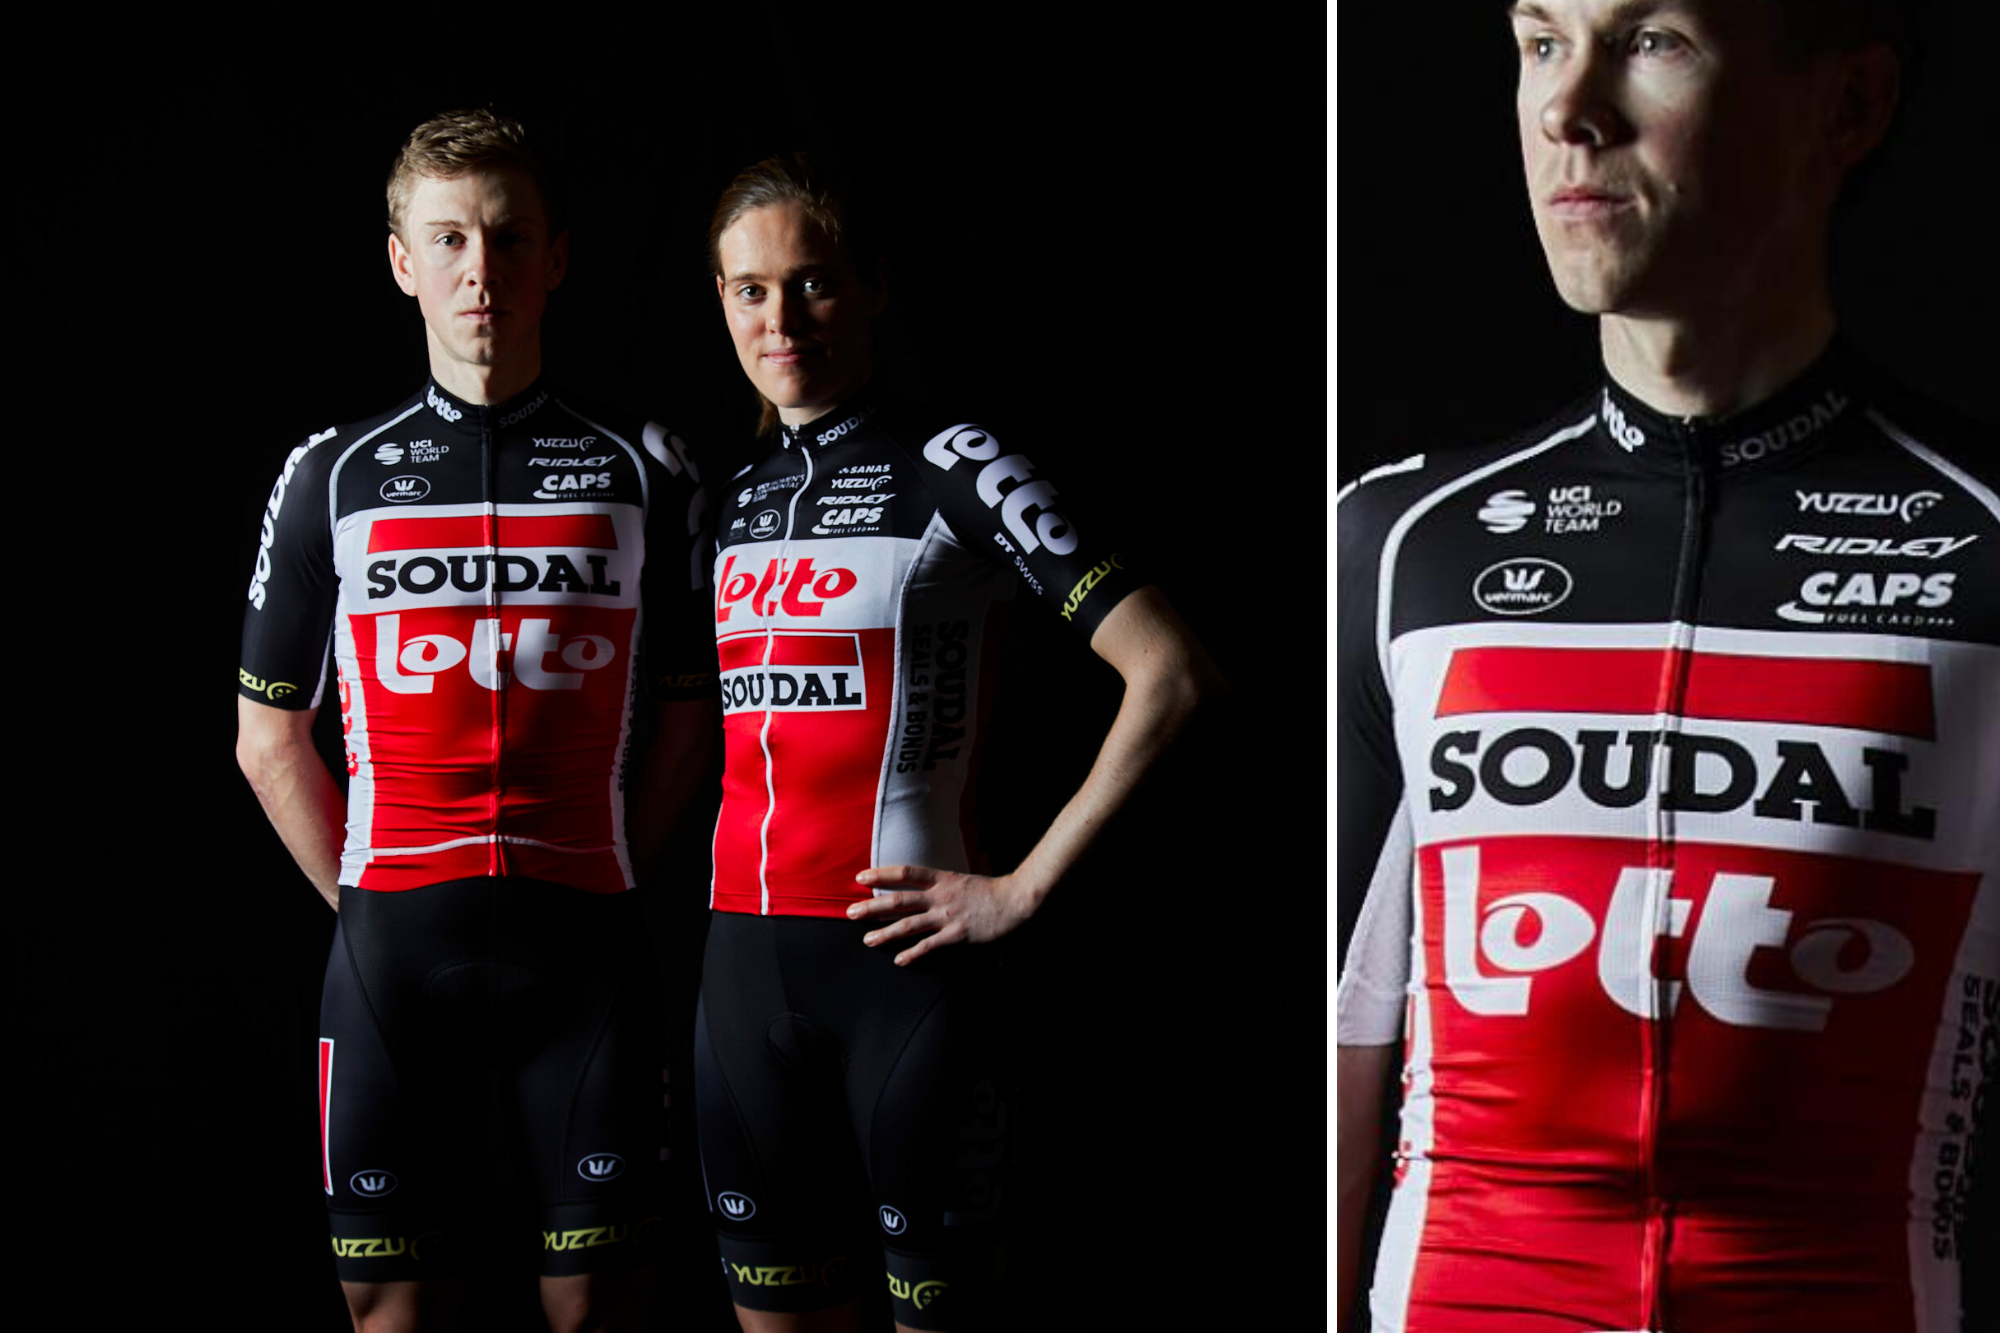 Lotto-Soudal become the latest team to reveal their 2020 kit